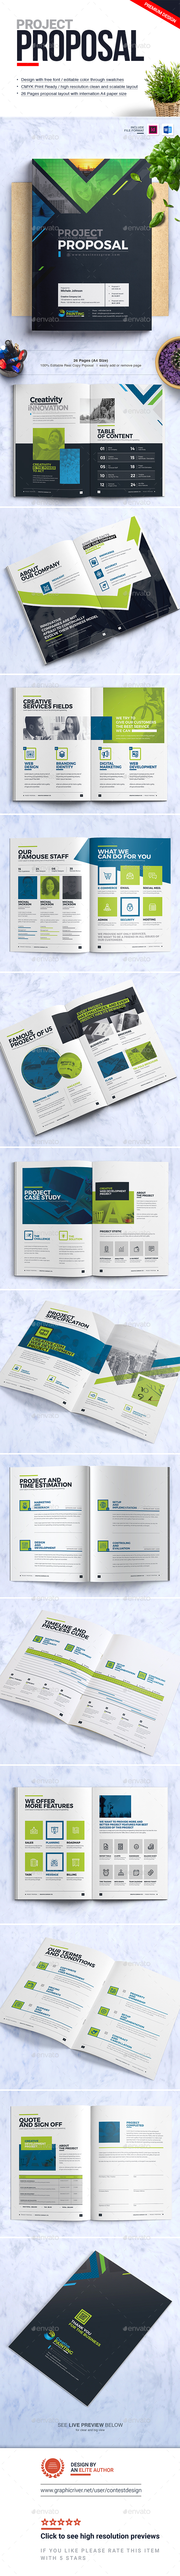 GraphicRiver Project Proposal Template MS Word Business Proposal 20952887